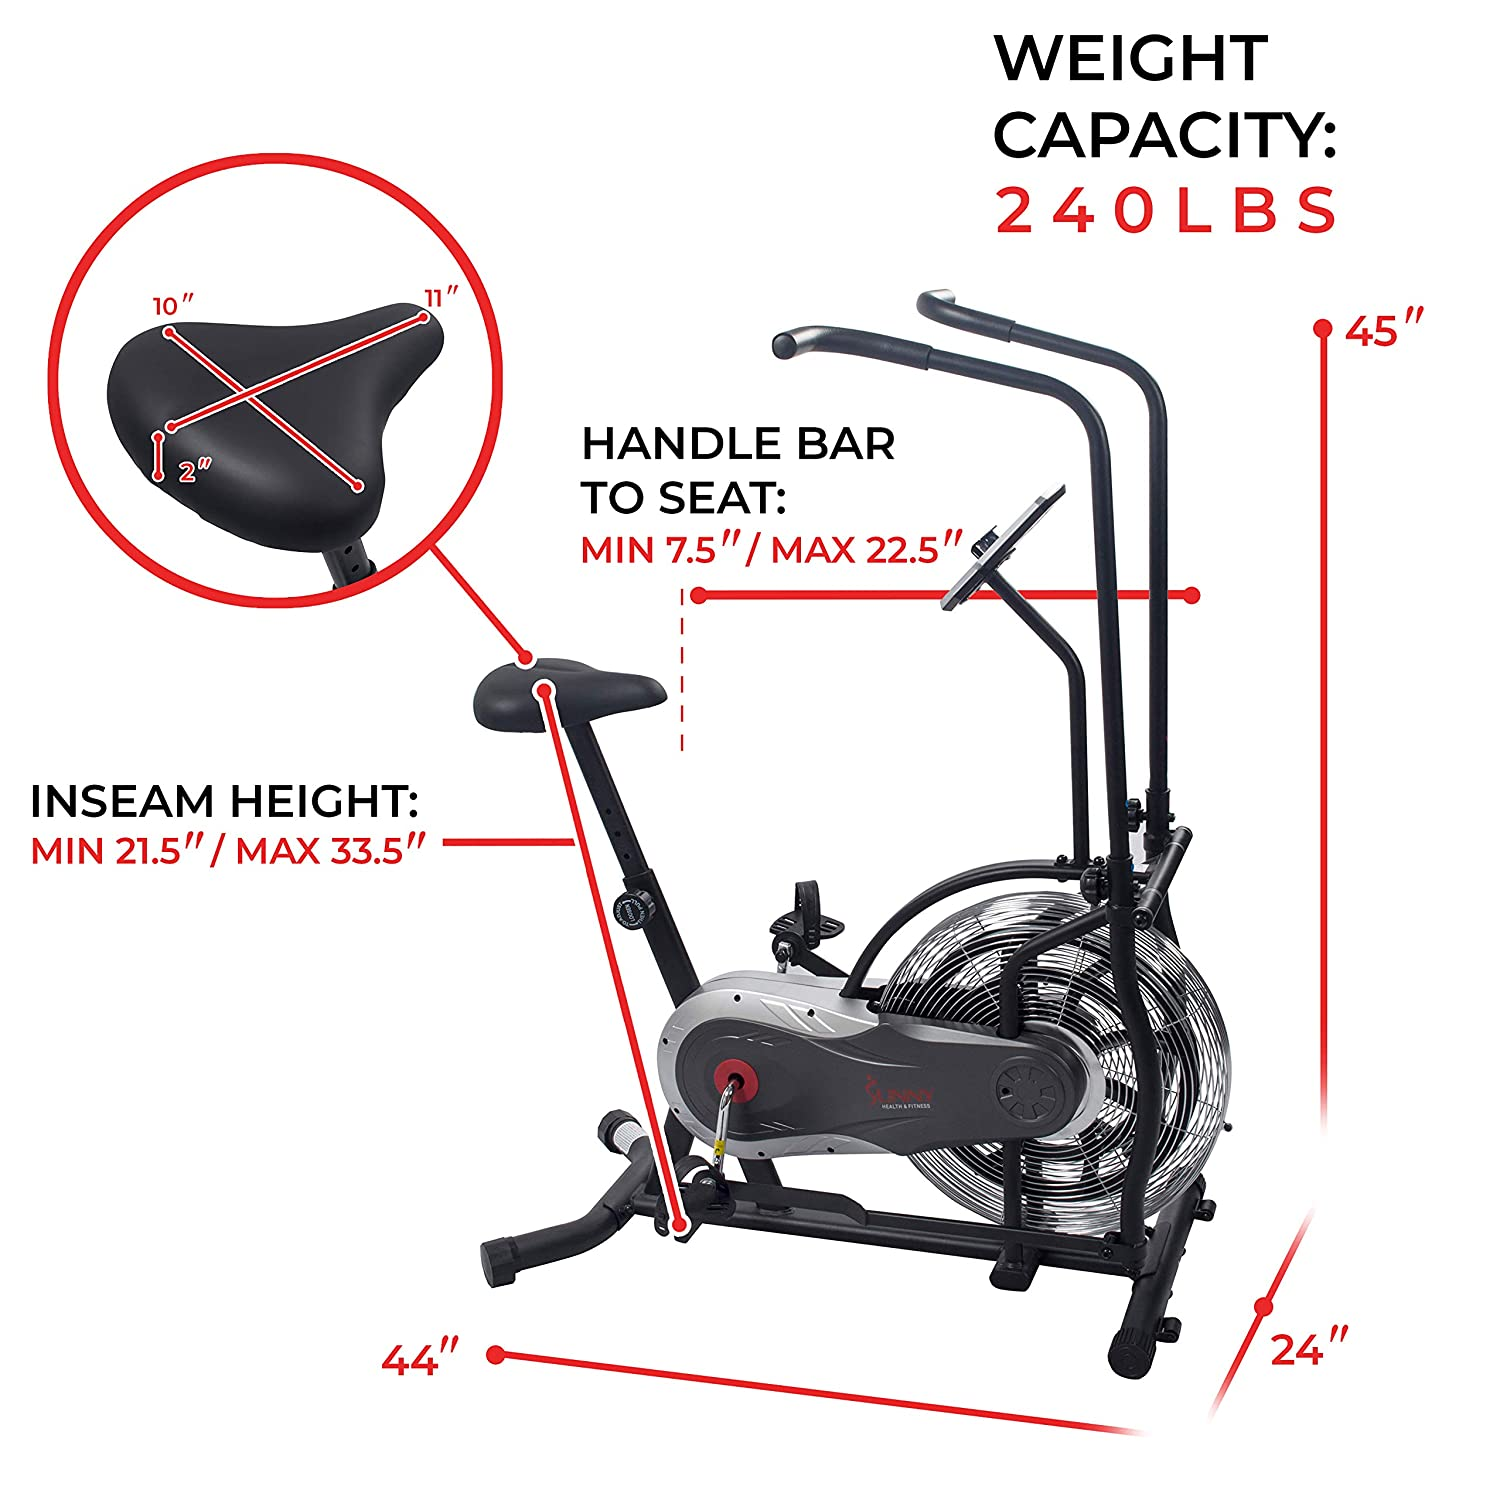 Amazon.com: SUNNY Health & Fitness Zephyr Air Bike ...